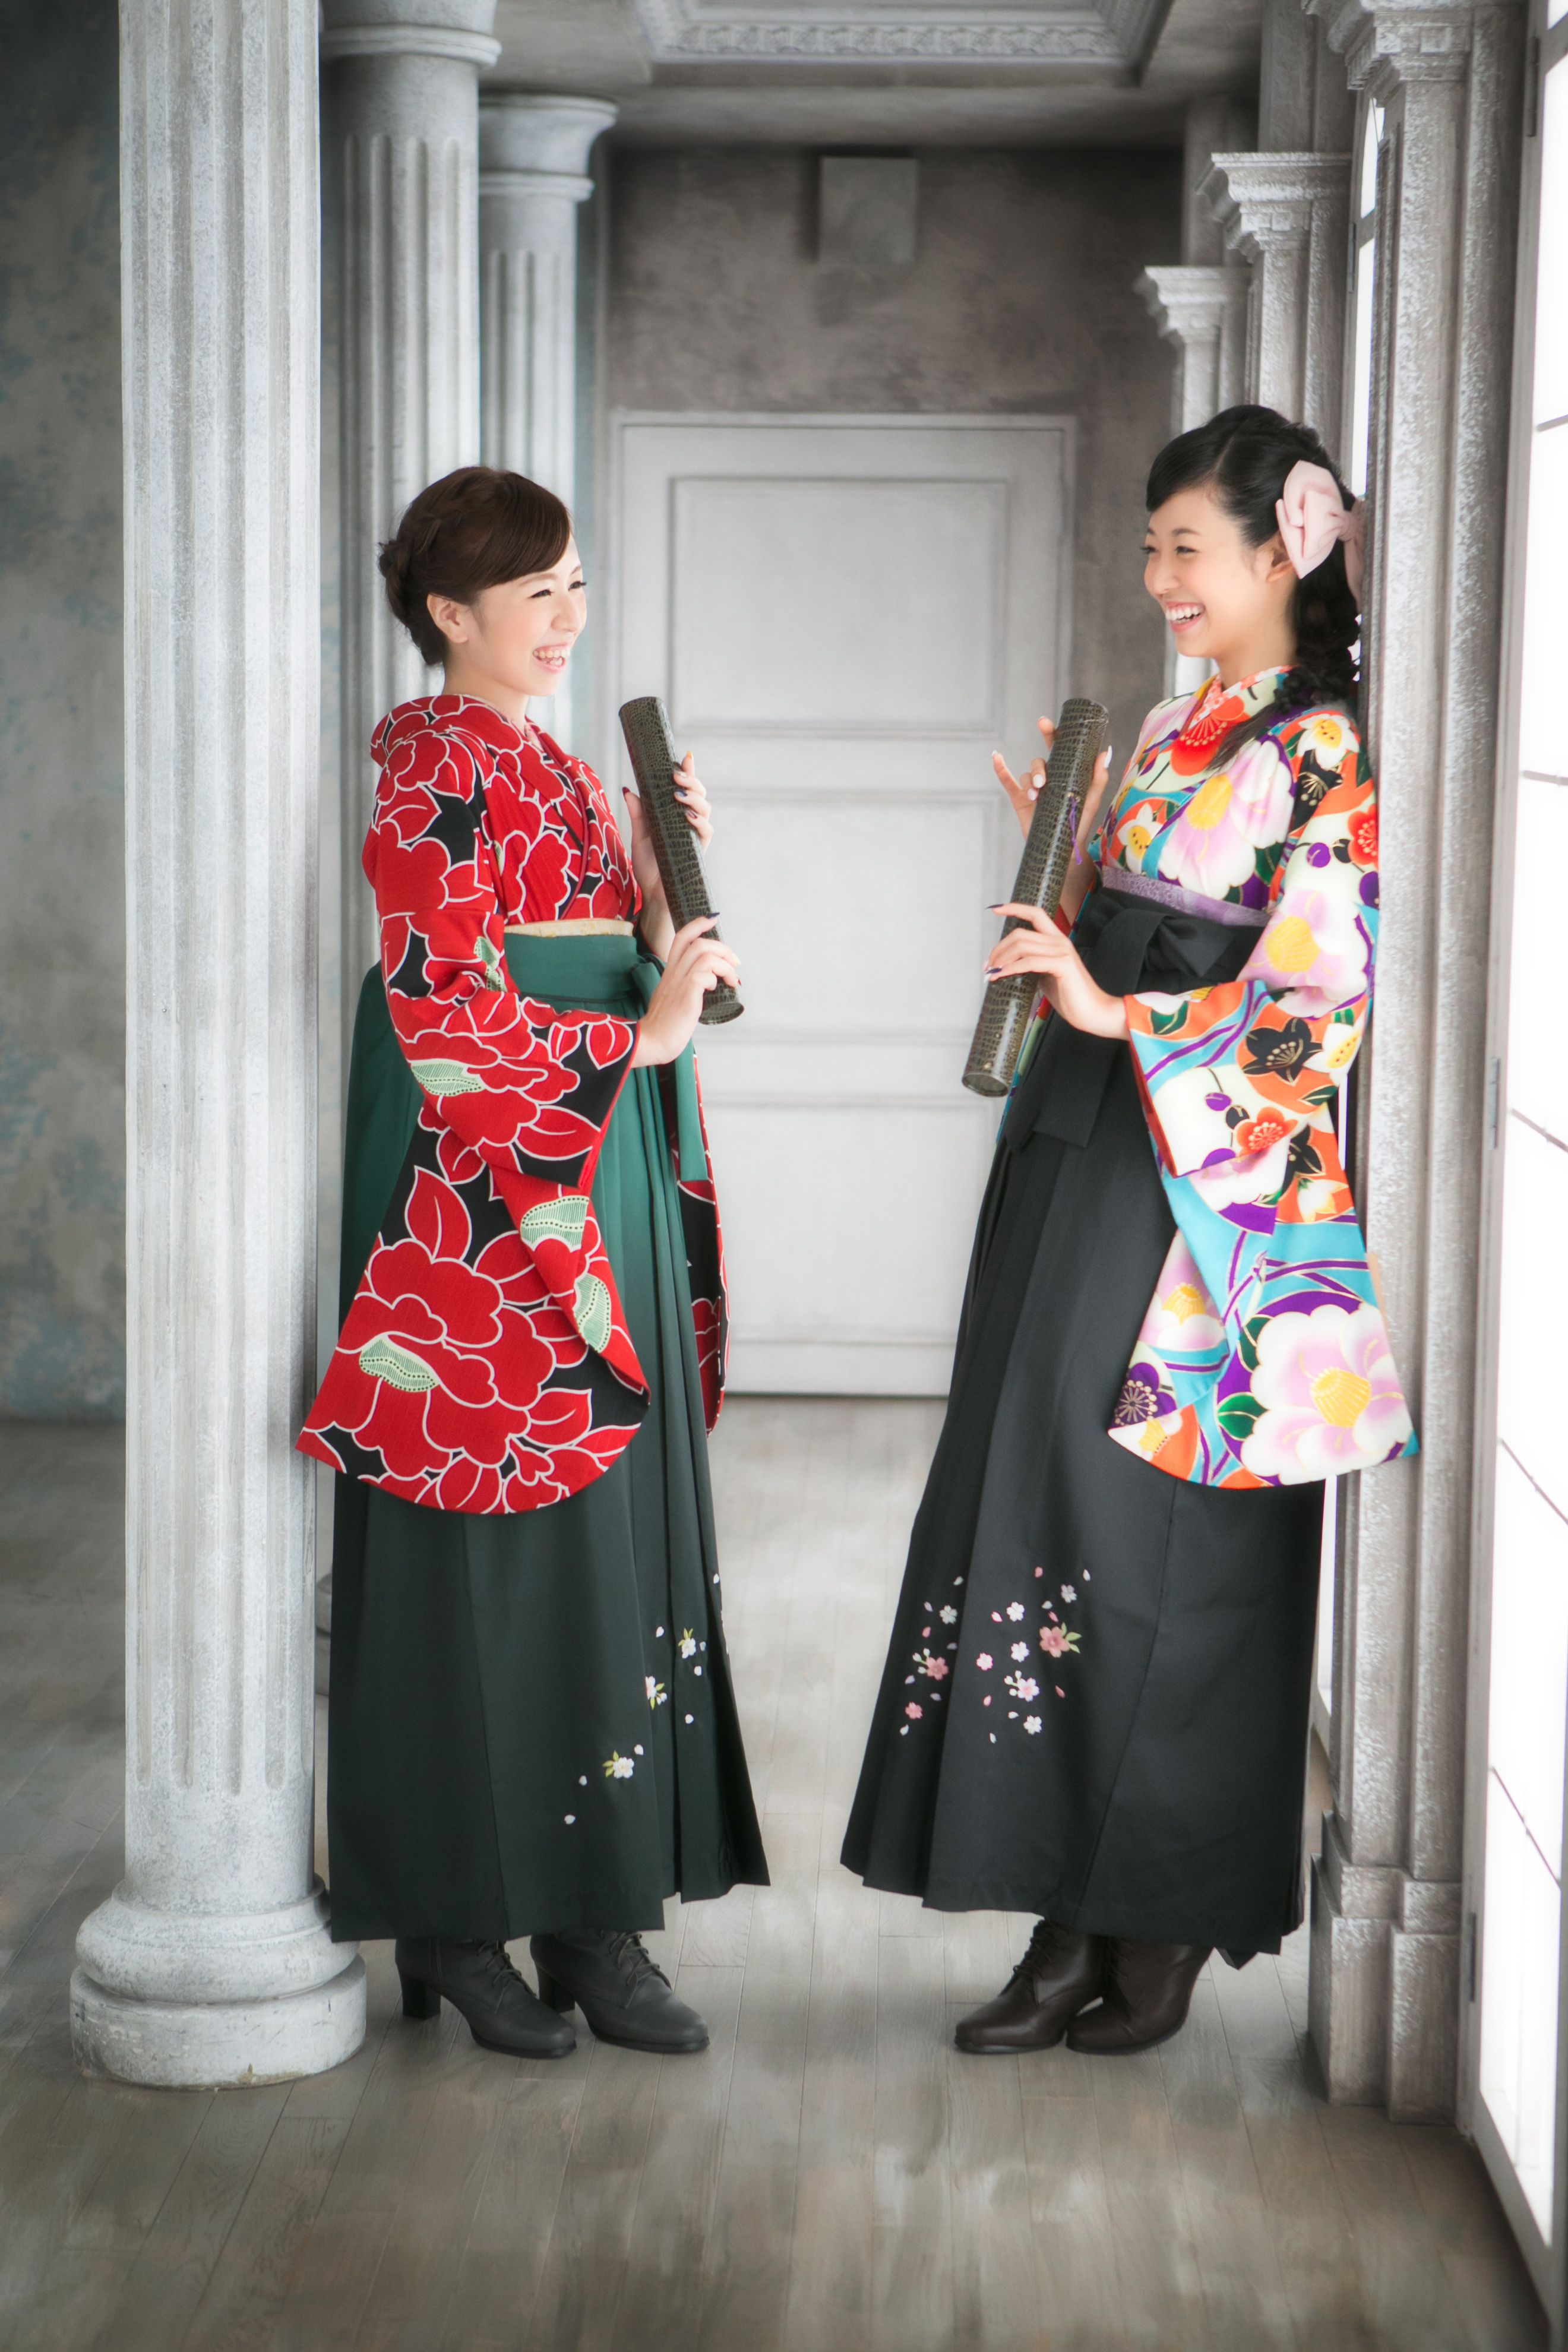 This is a hakama hakama is a divided or pleated skirt worn over a